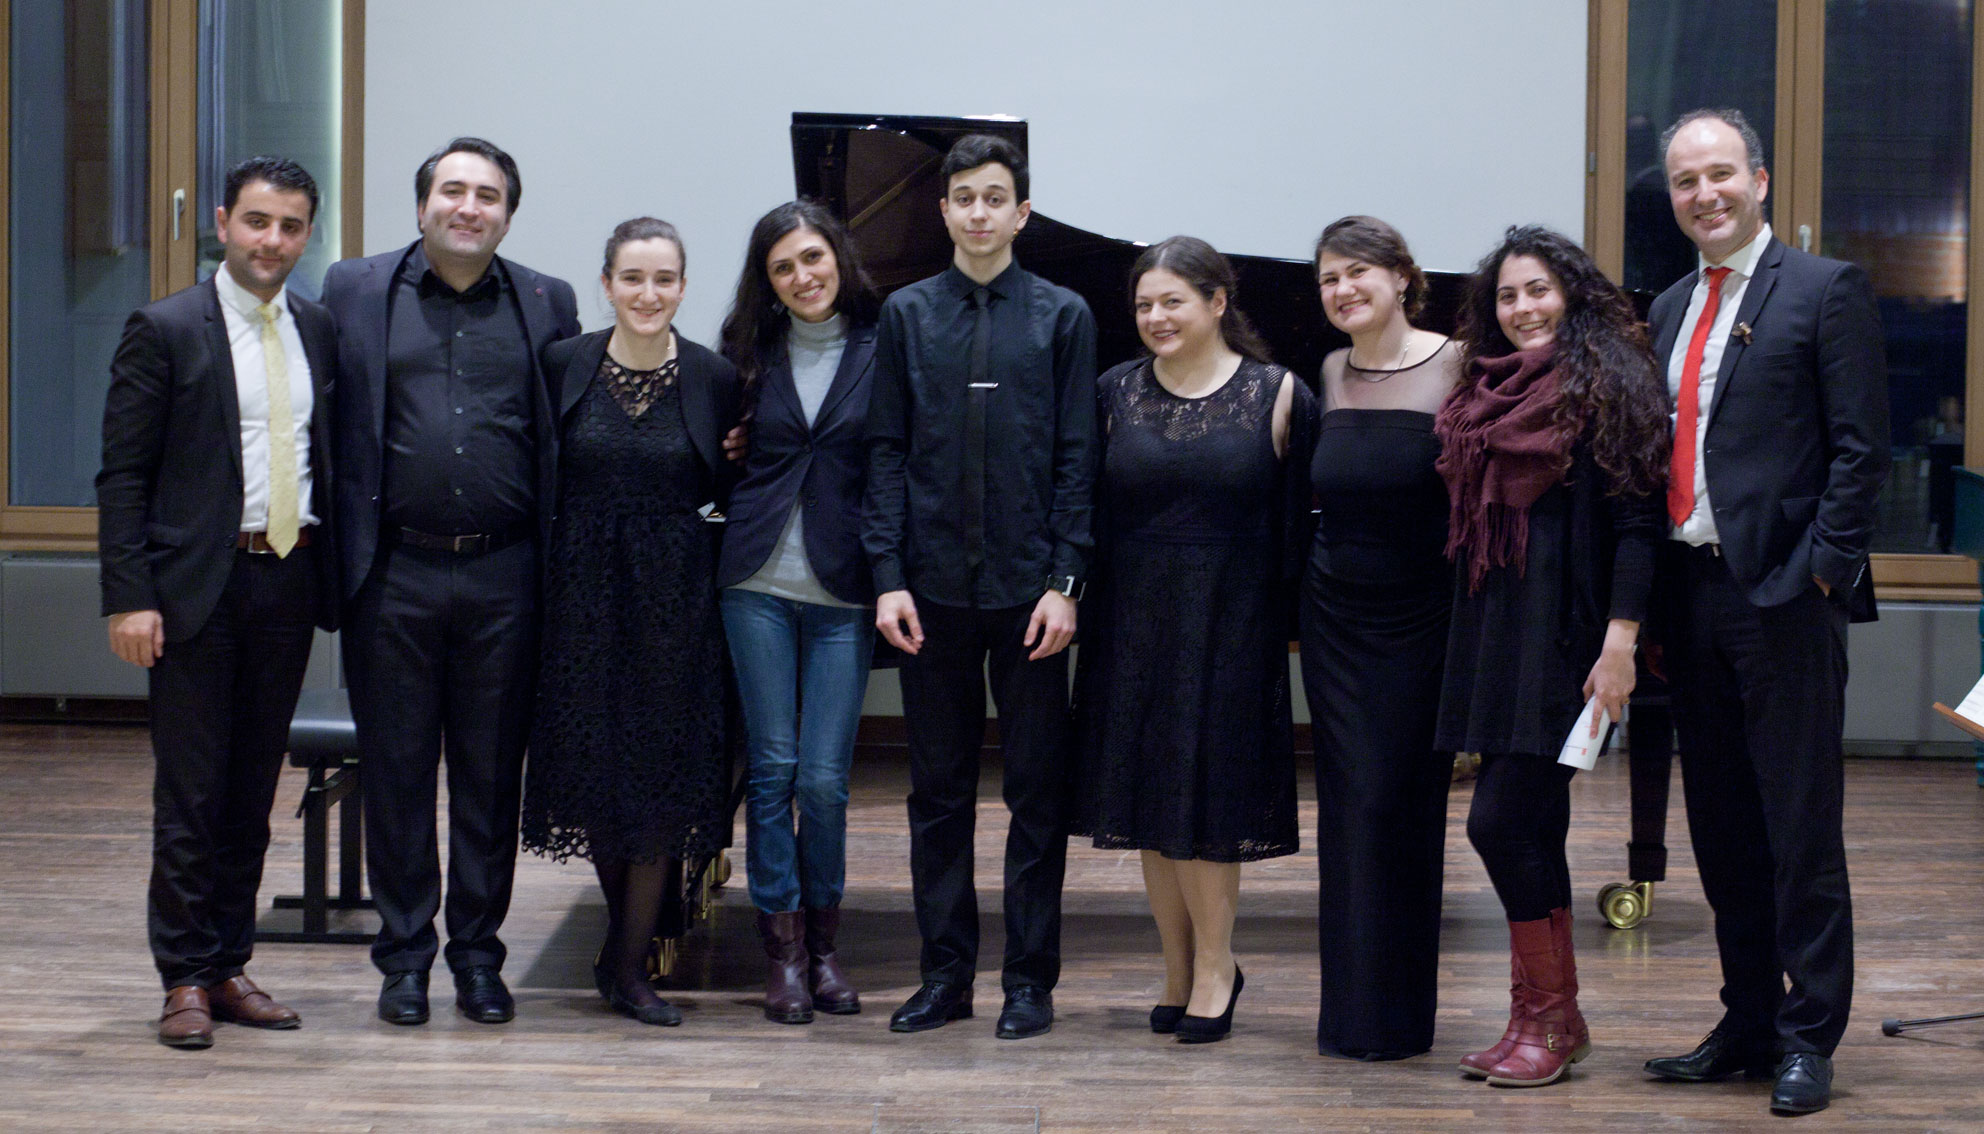 AGBU-HAIK celebrates 10 Years of Partnership with Concert in Rostock